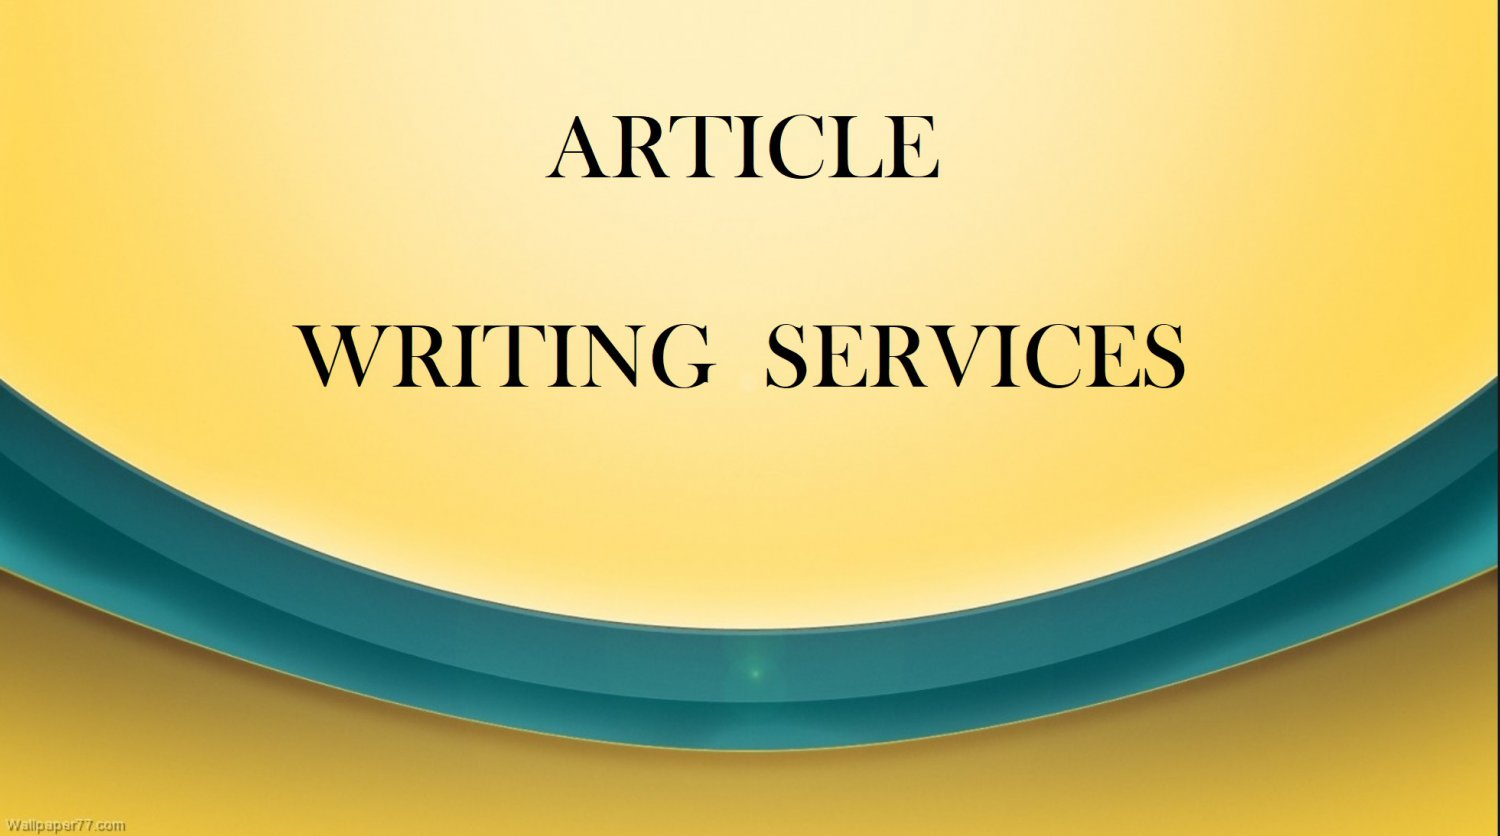 Article Writing Service 200 Words